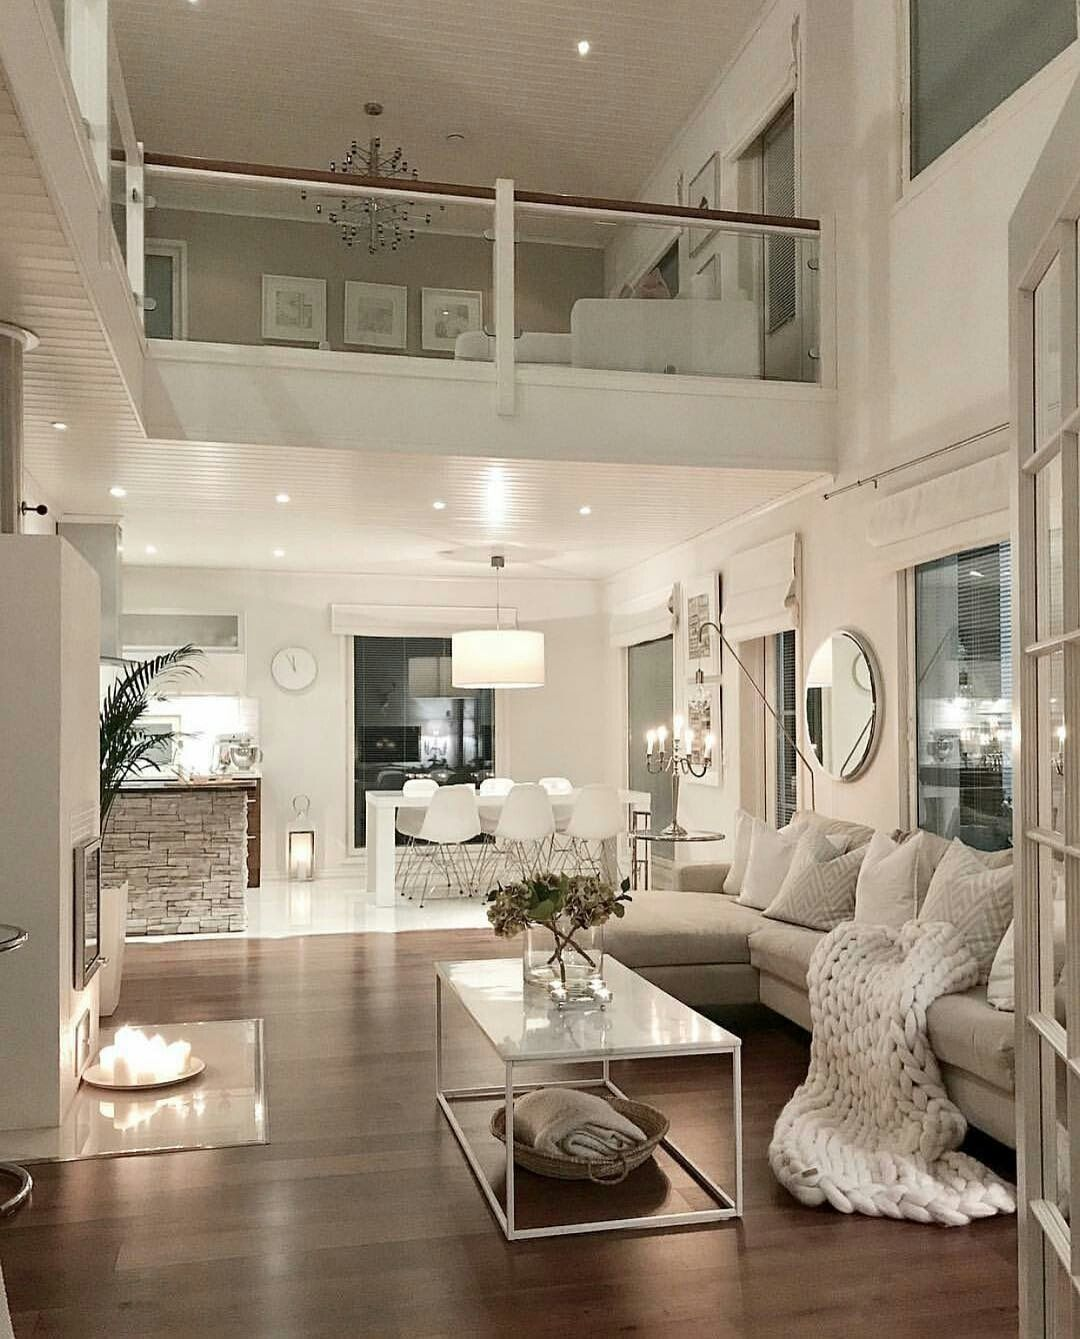 Duplex inspiration pkliving my living interior design is the definitive resource for designers also rh ar pinterest